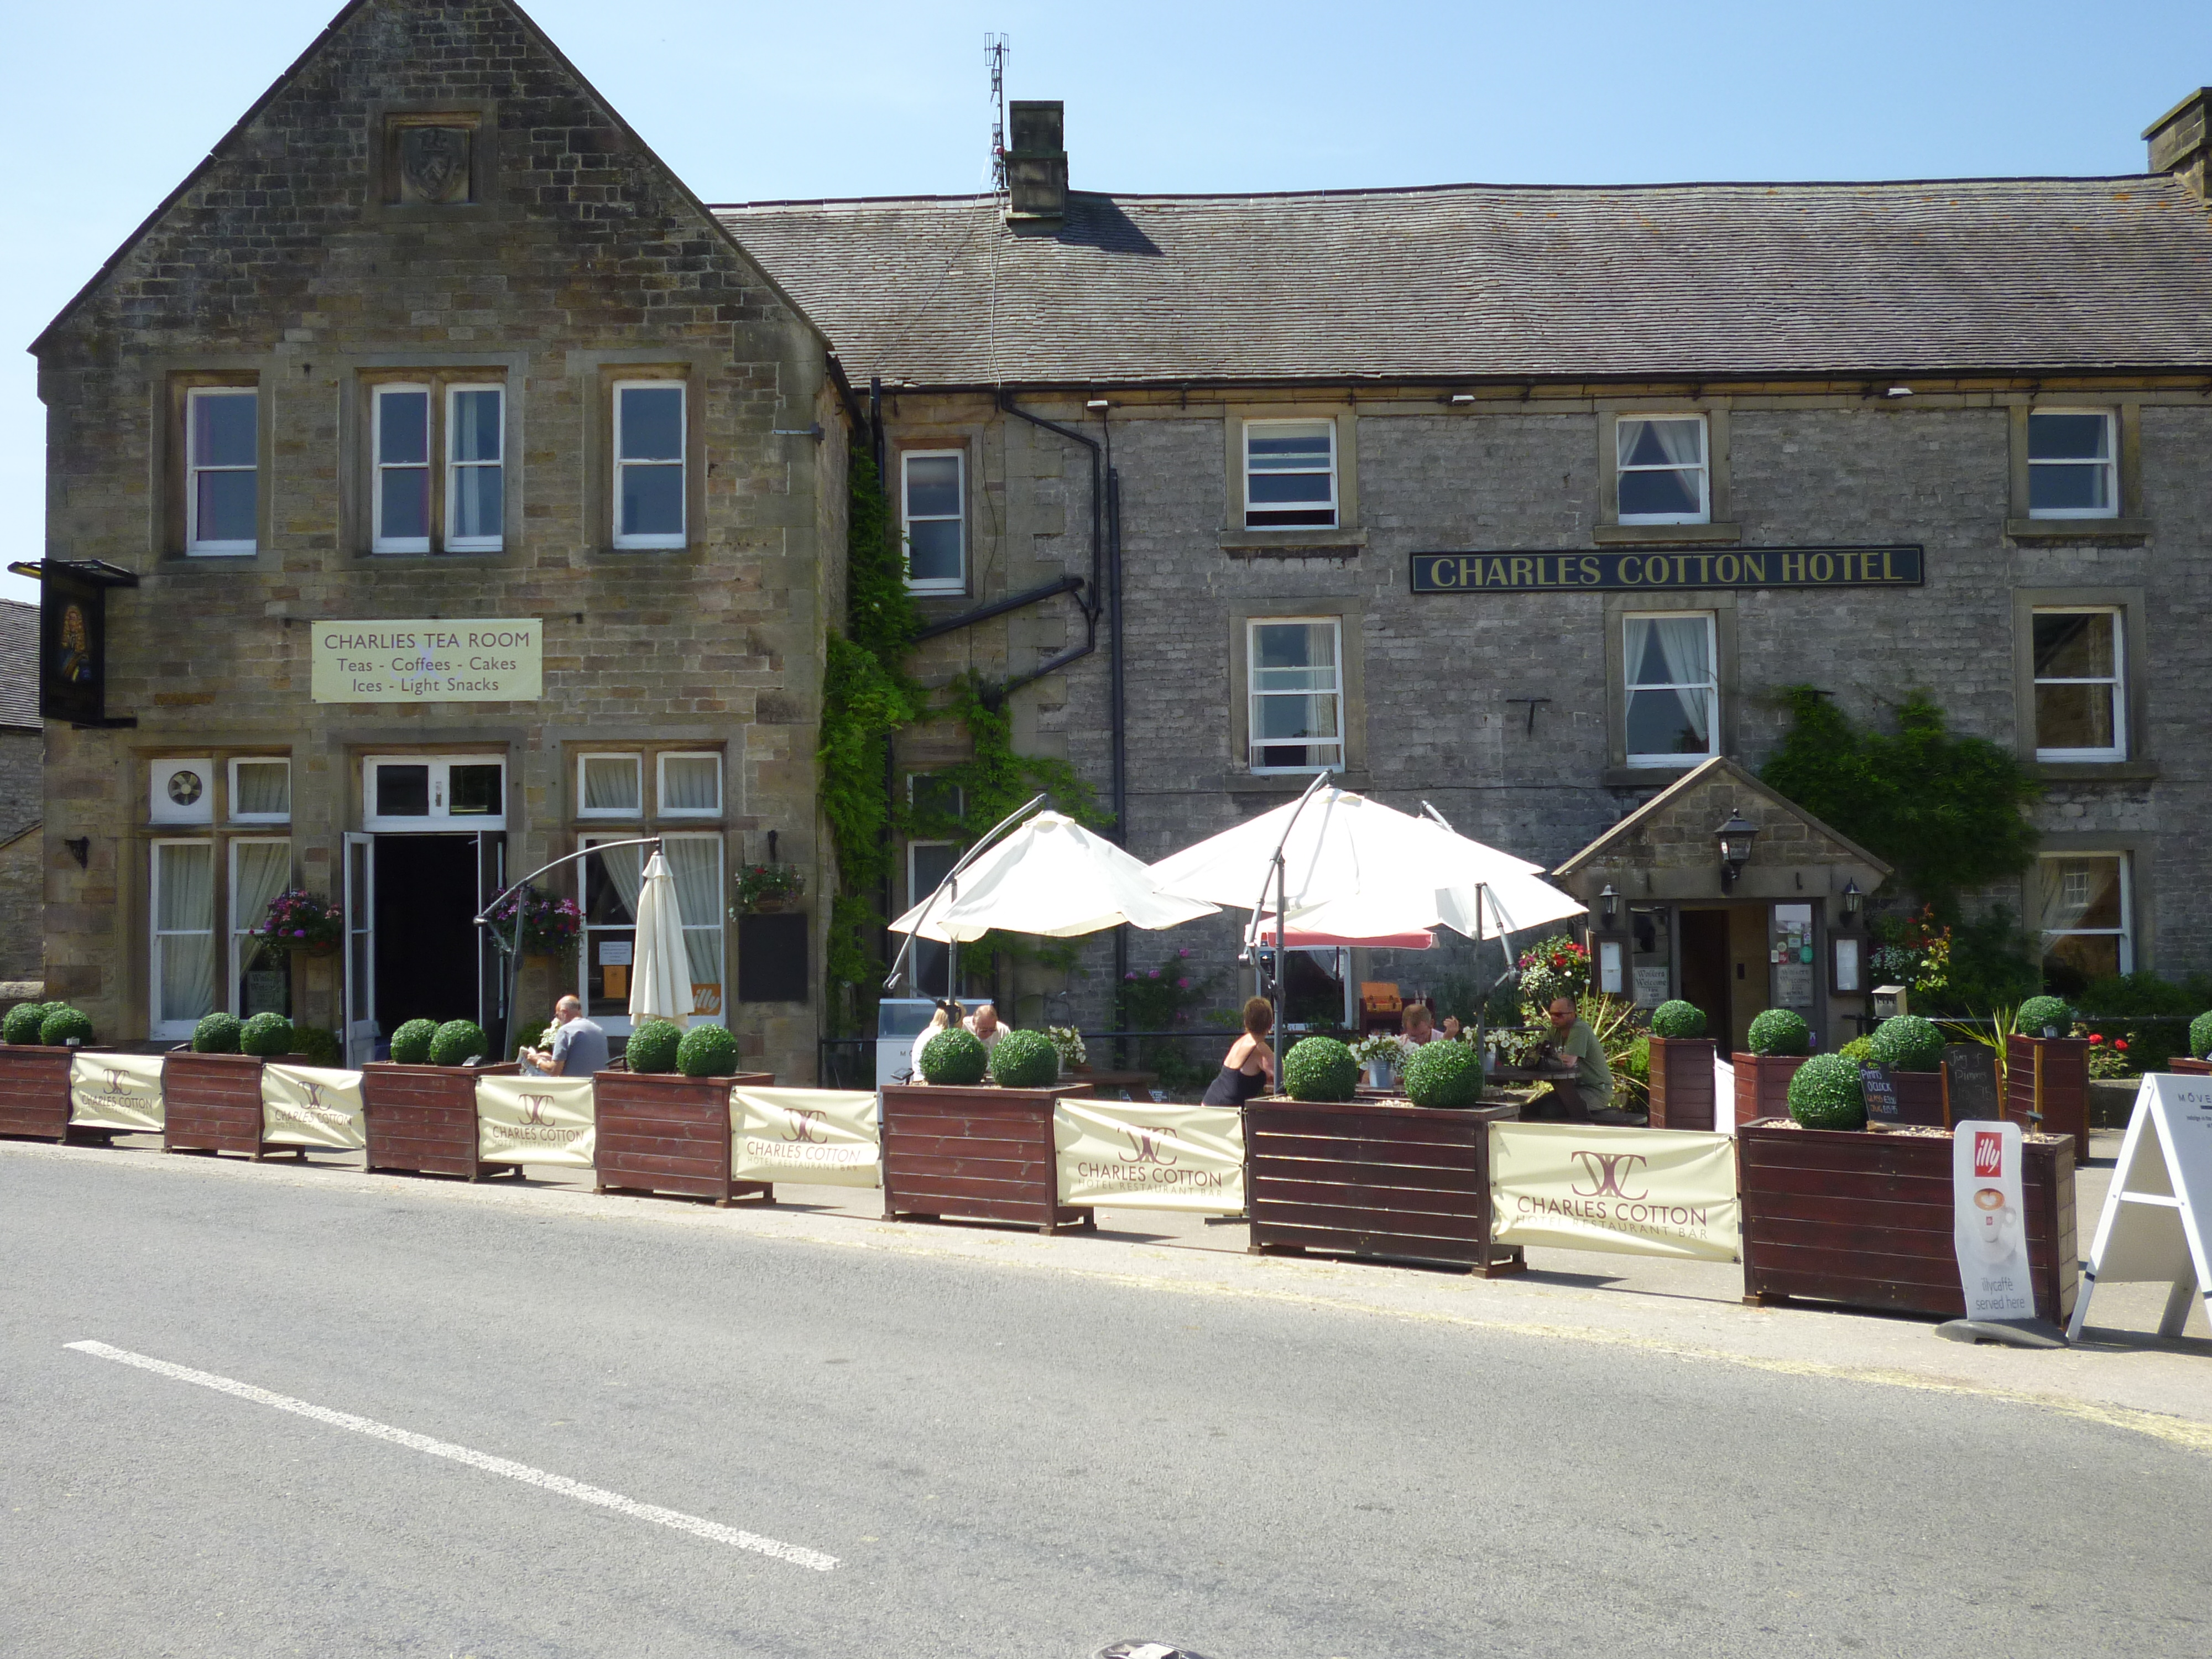 The Charles Cotton Hotel in Hartington in the Peak District National Park